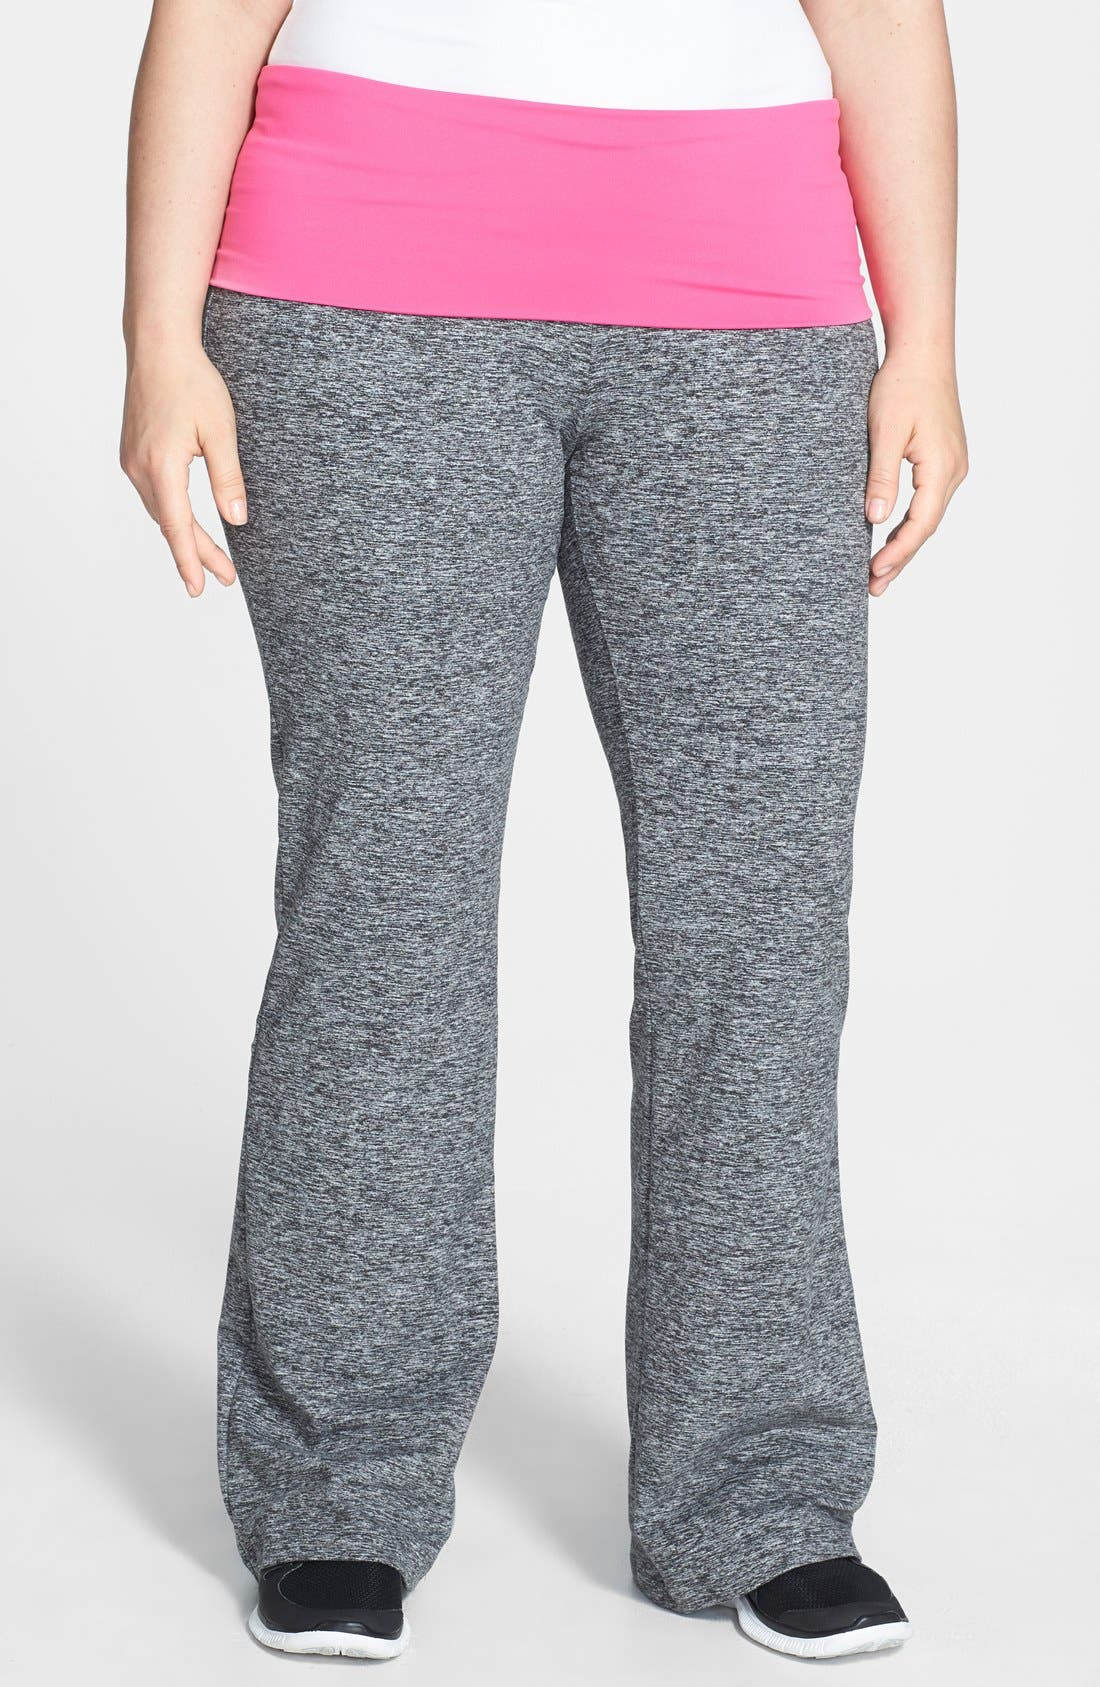 Alternate Image 1 Selected - Pink Lotus Contrast Waist Compression Yoga Pants (Plus Size)